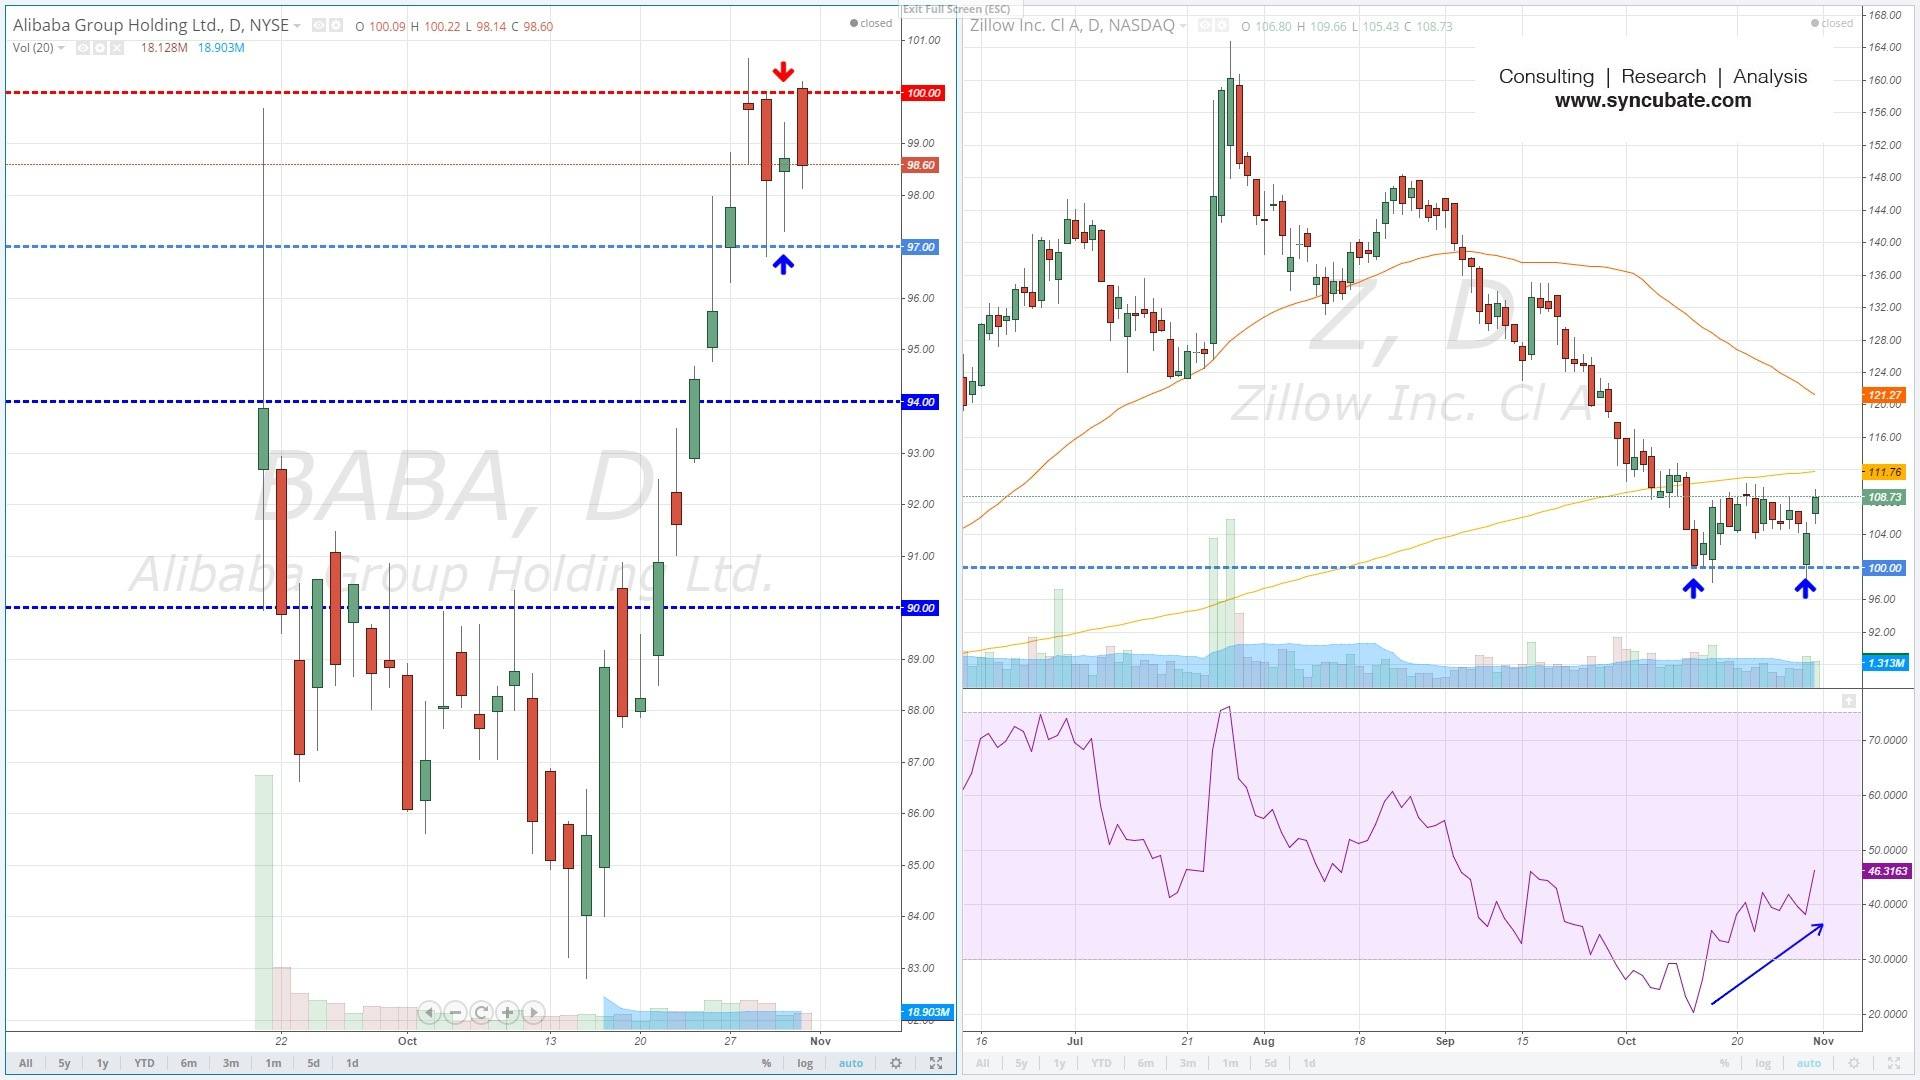 $BABA : Alibaba Group Holding Ltd. ; $Z : Zillow Inc.